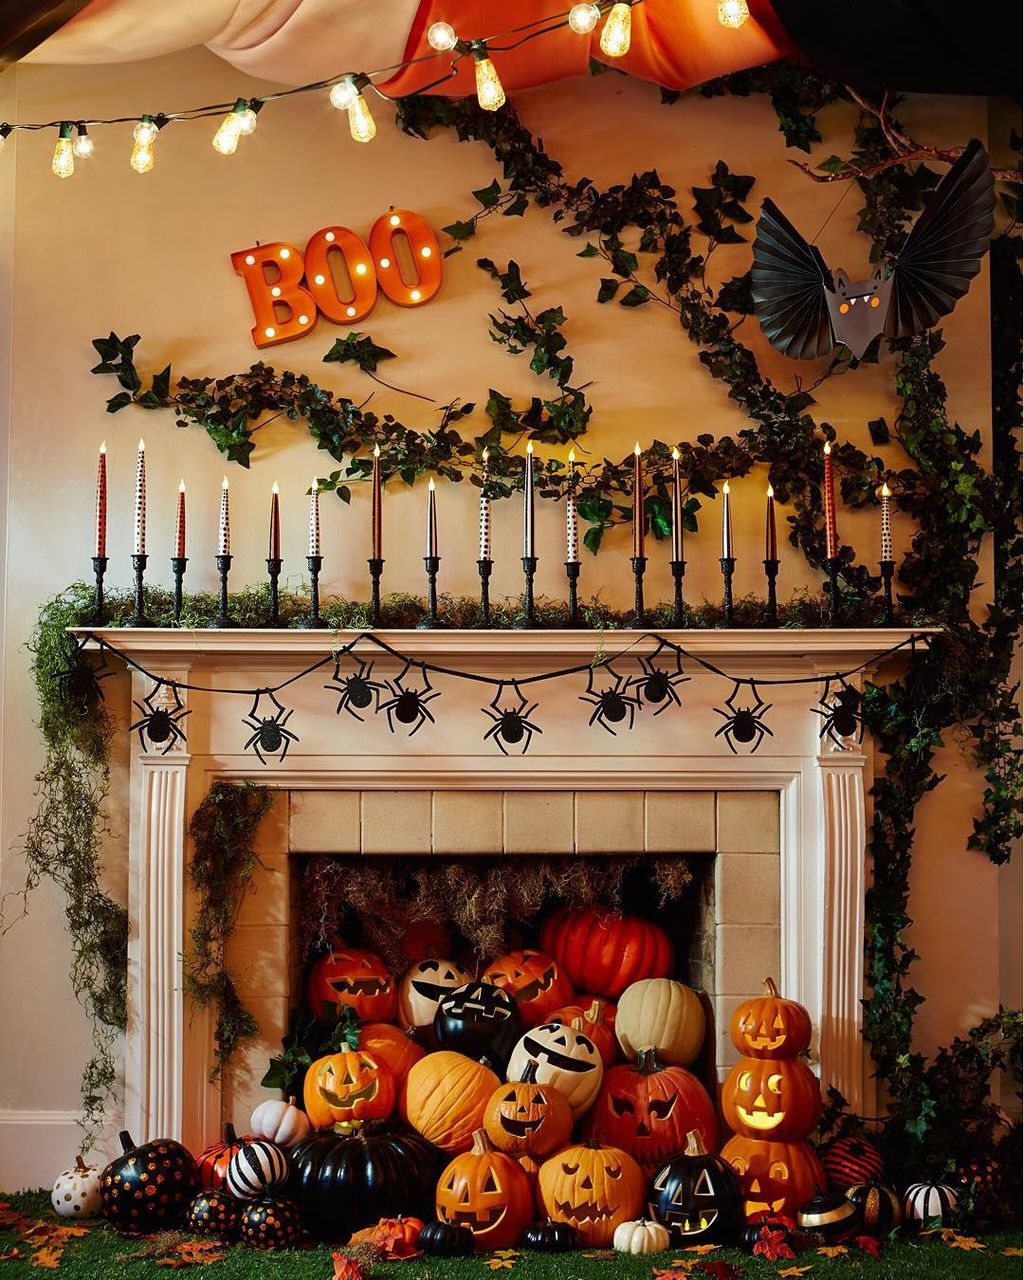 Scary But Classy Halloween Fireplace Decoration Ideas 92